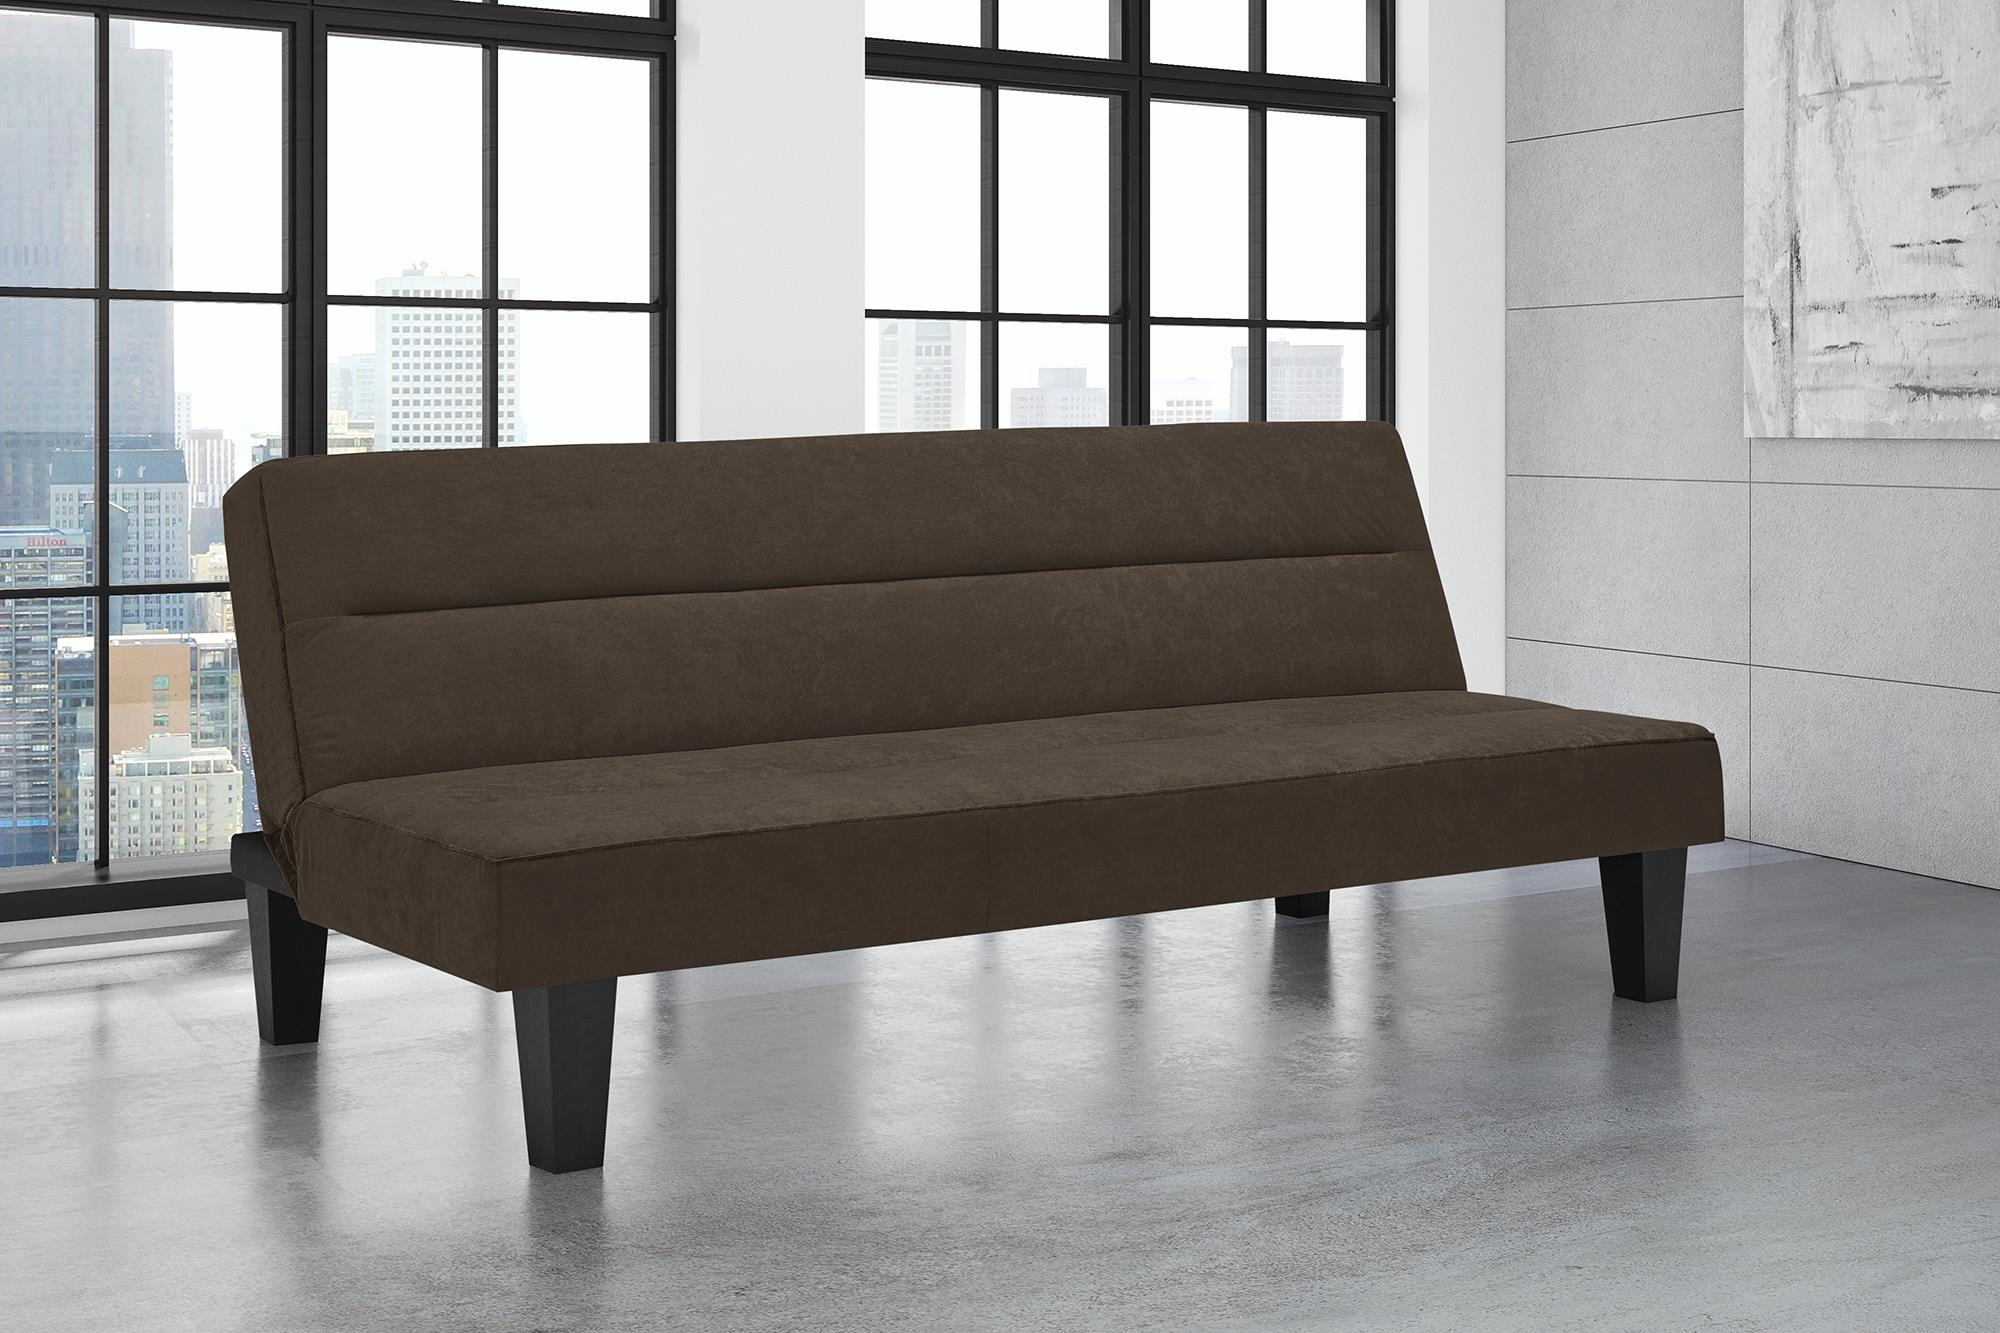 Futon Sofa Living Room Furniture Modern Bed Couch Dorm Lounger